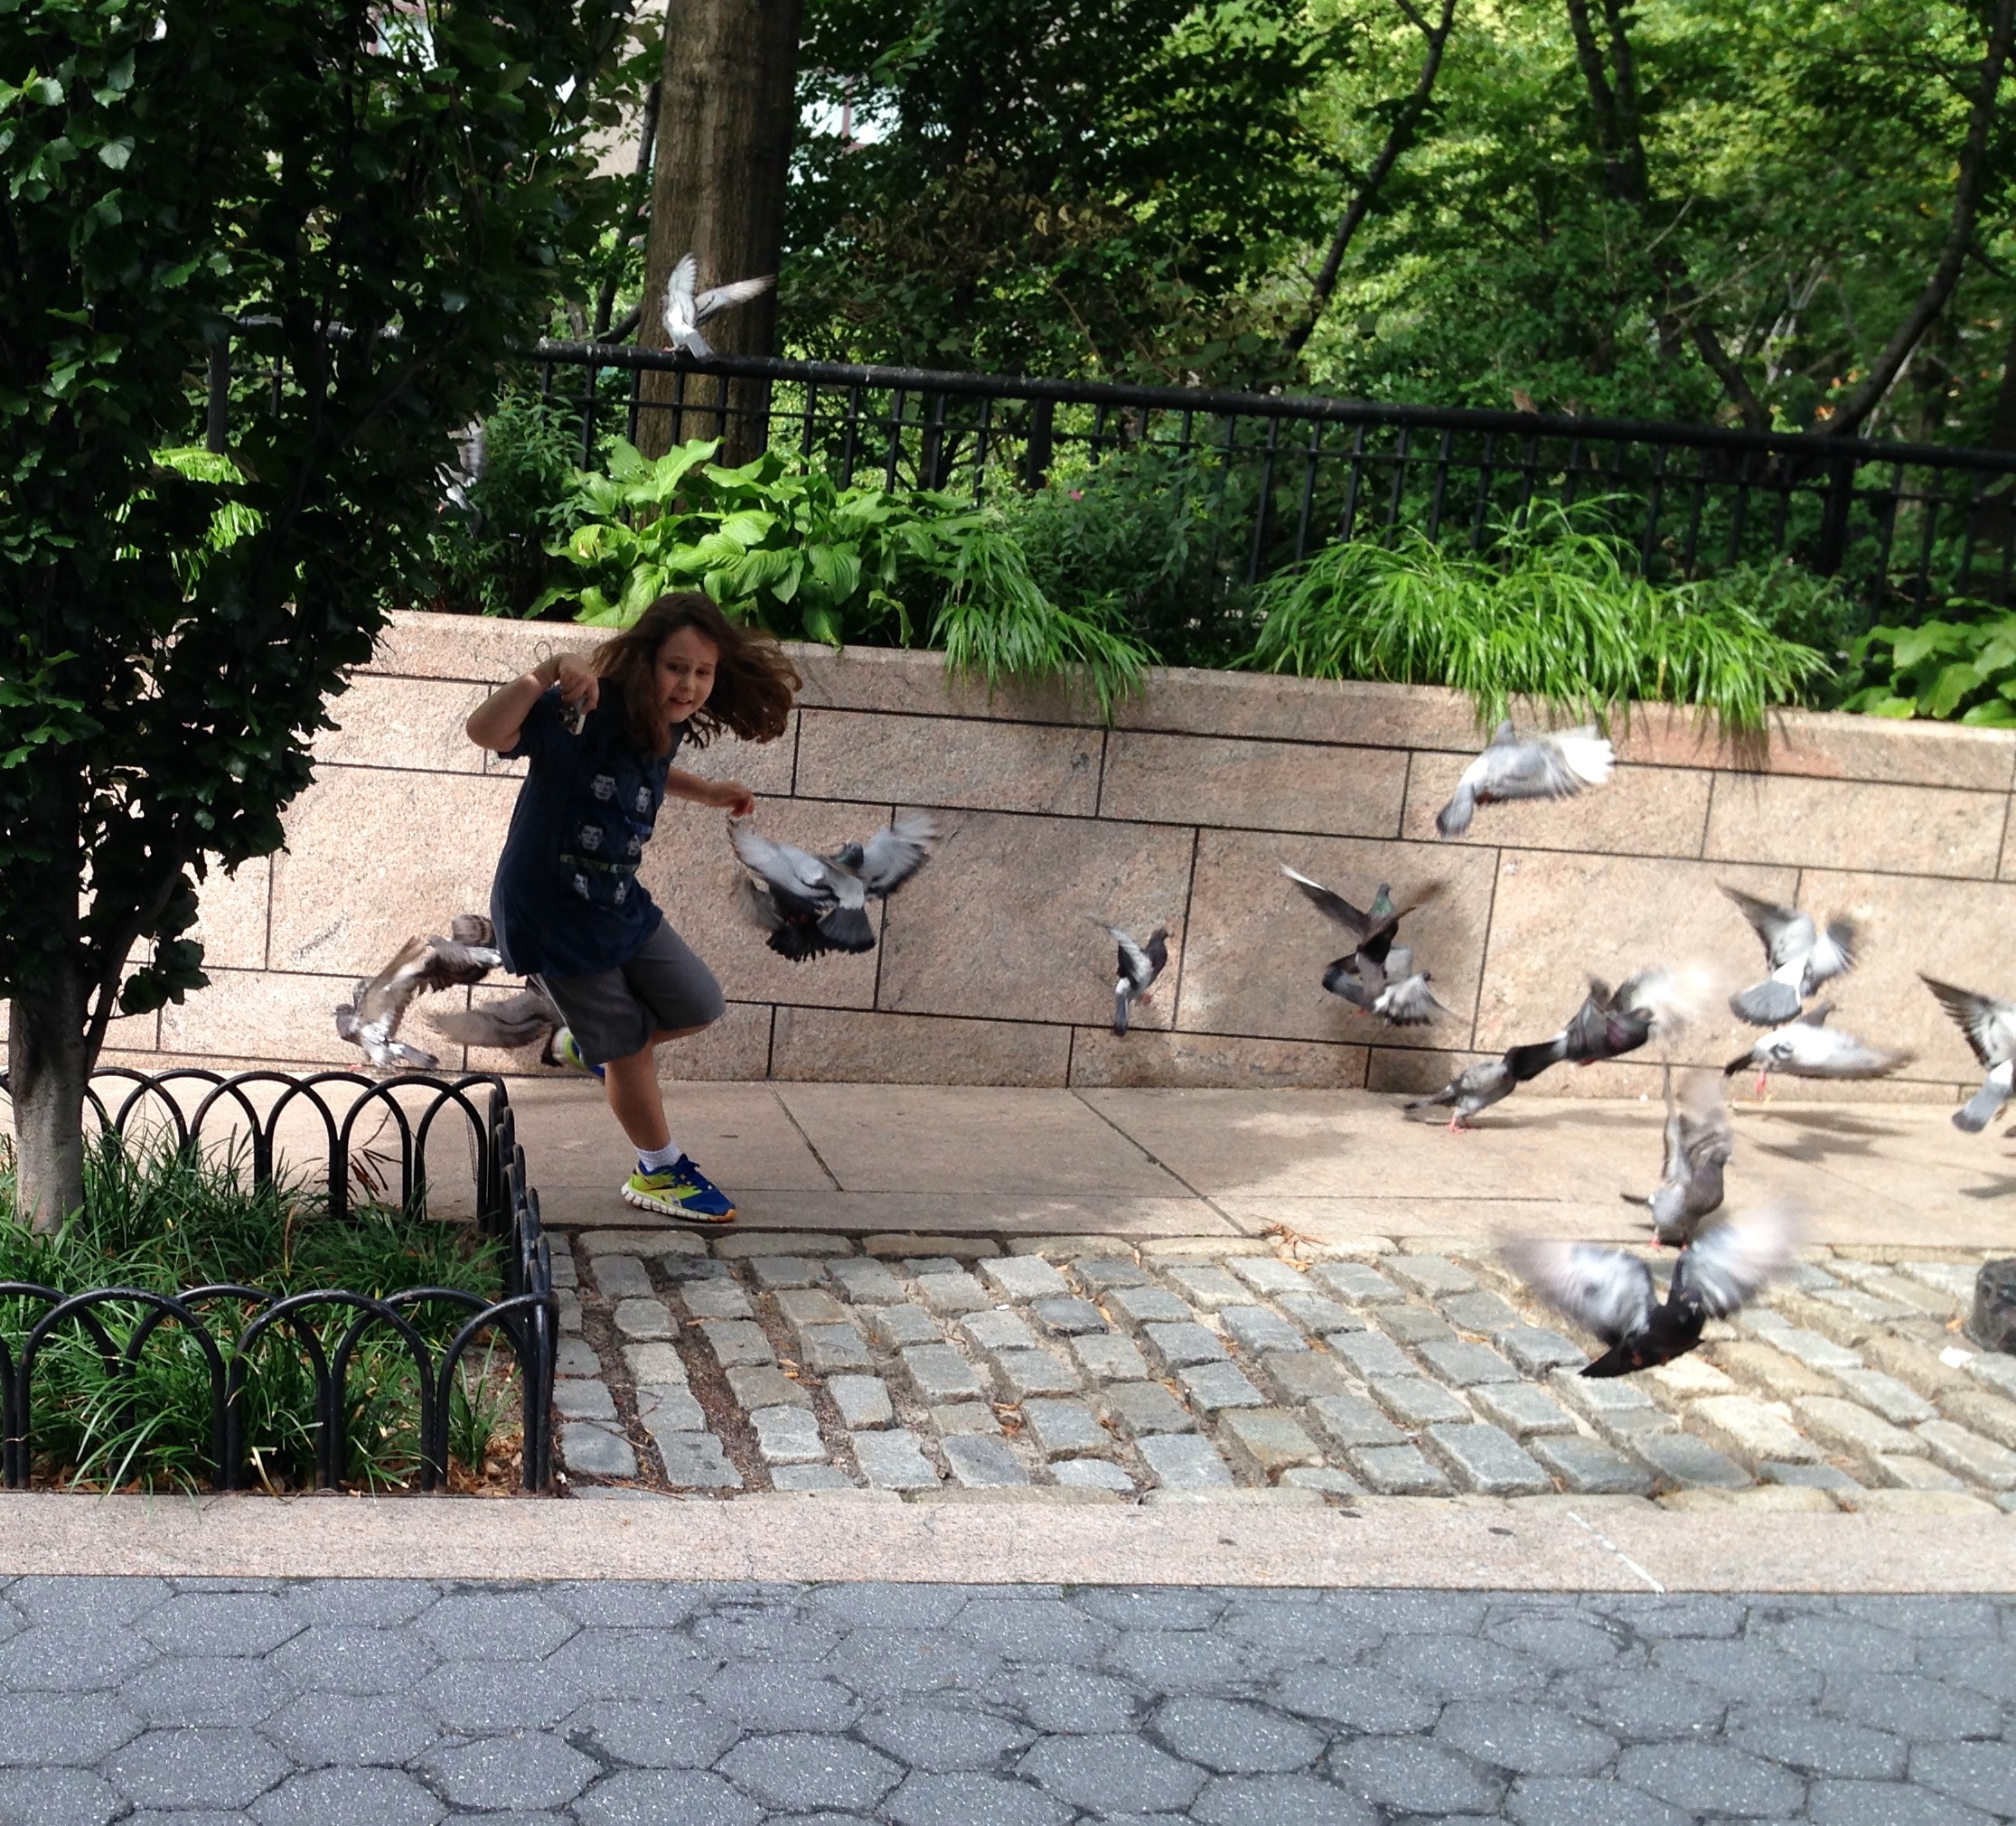 Chasing pigeons in lower Manhattan.